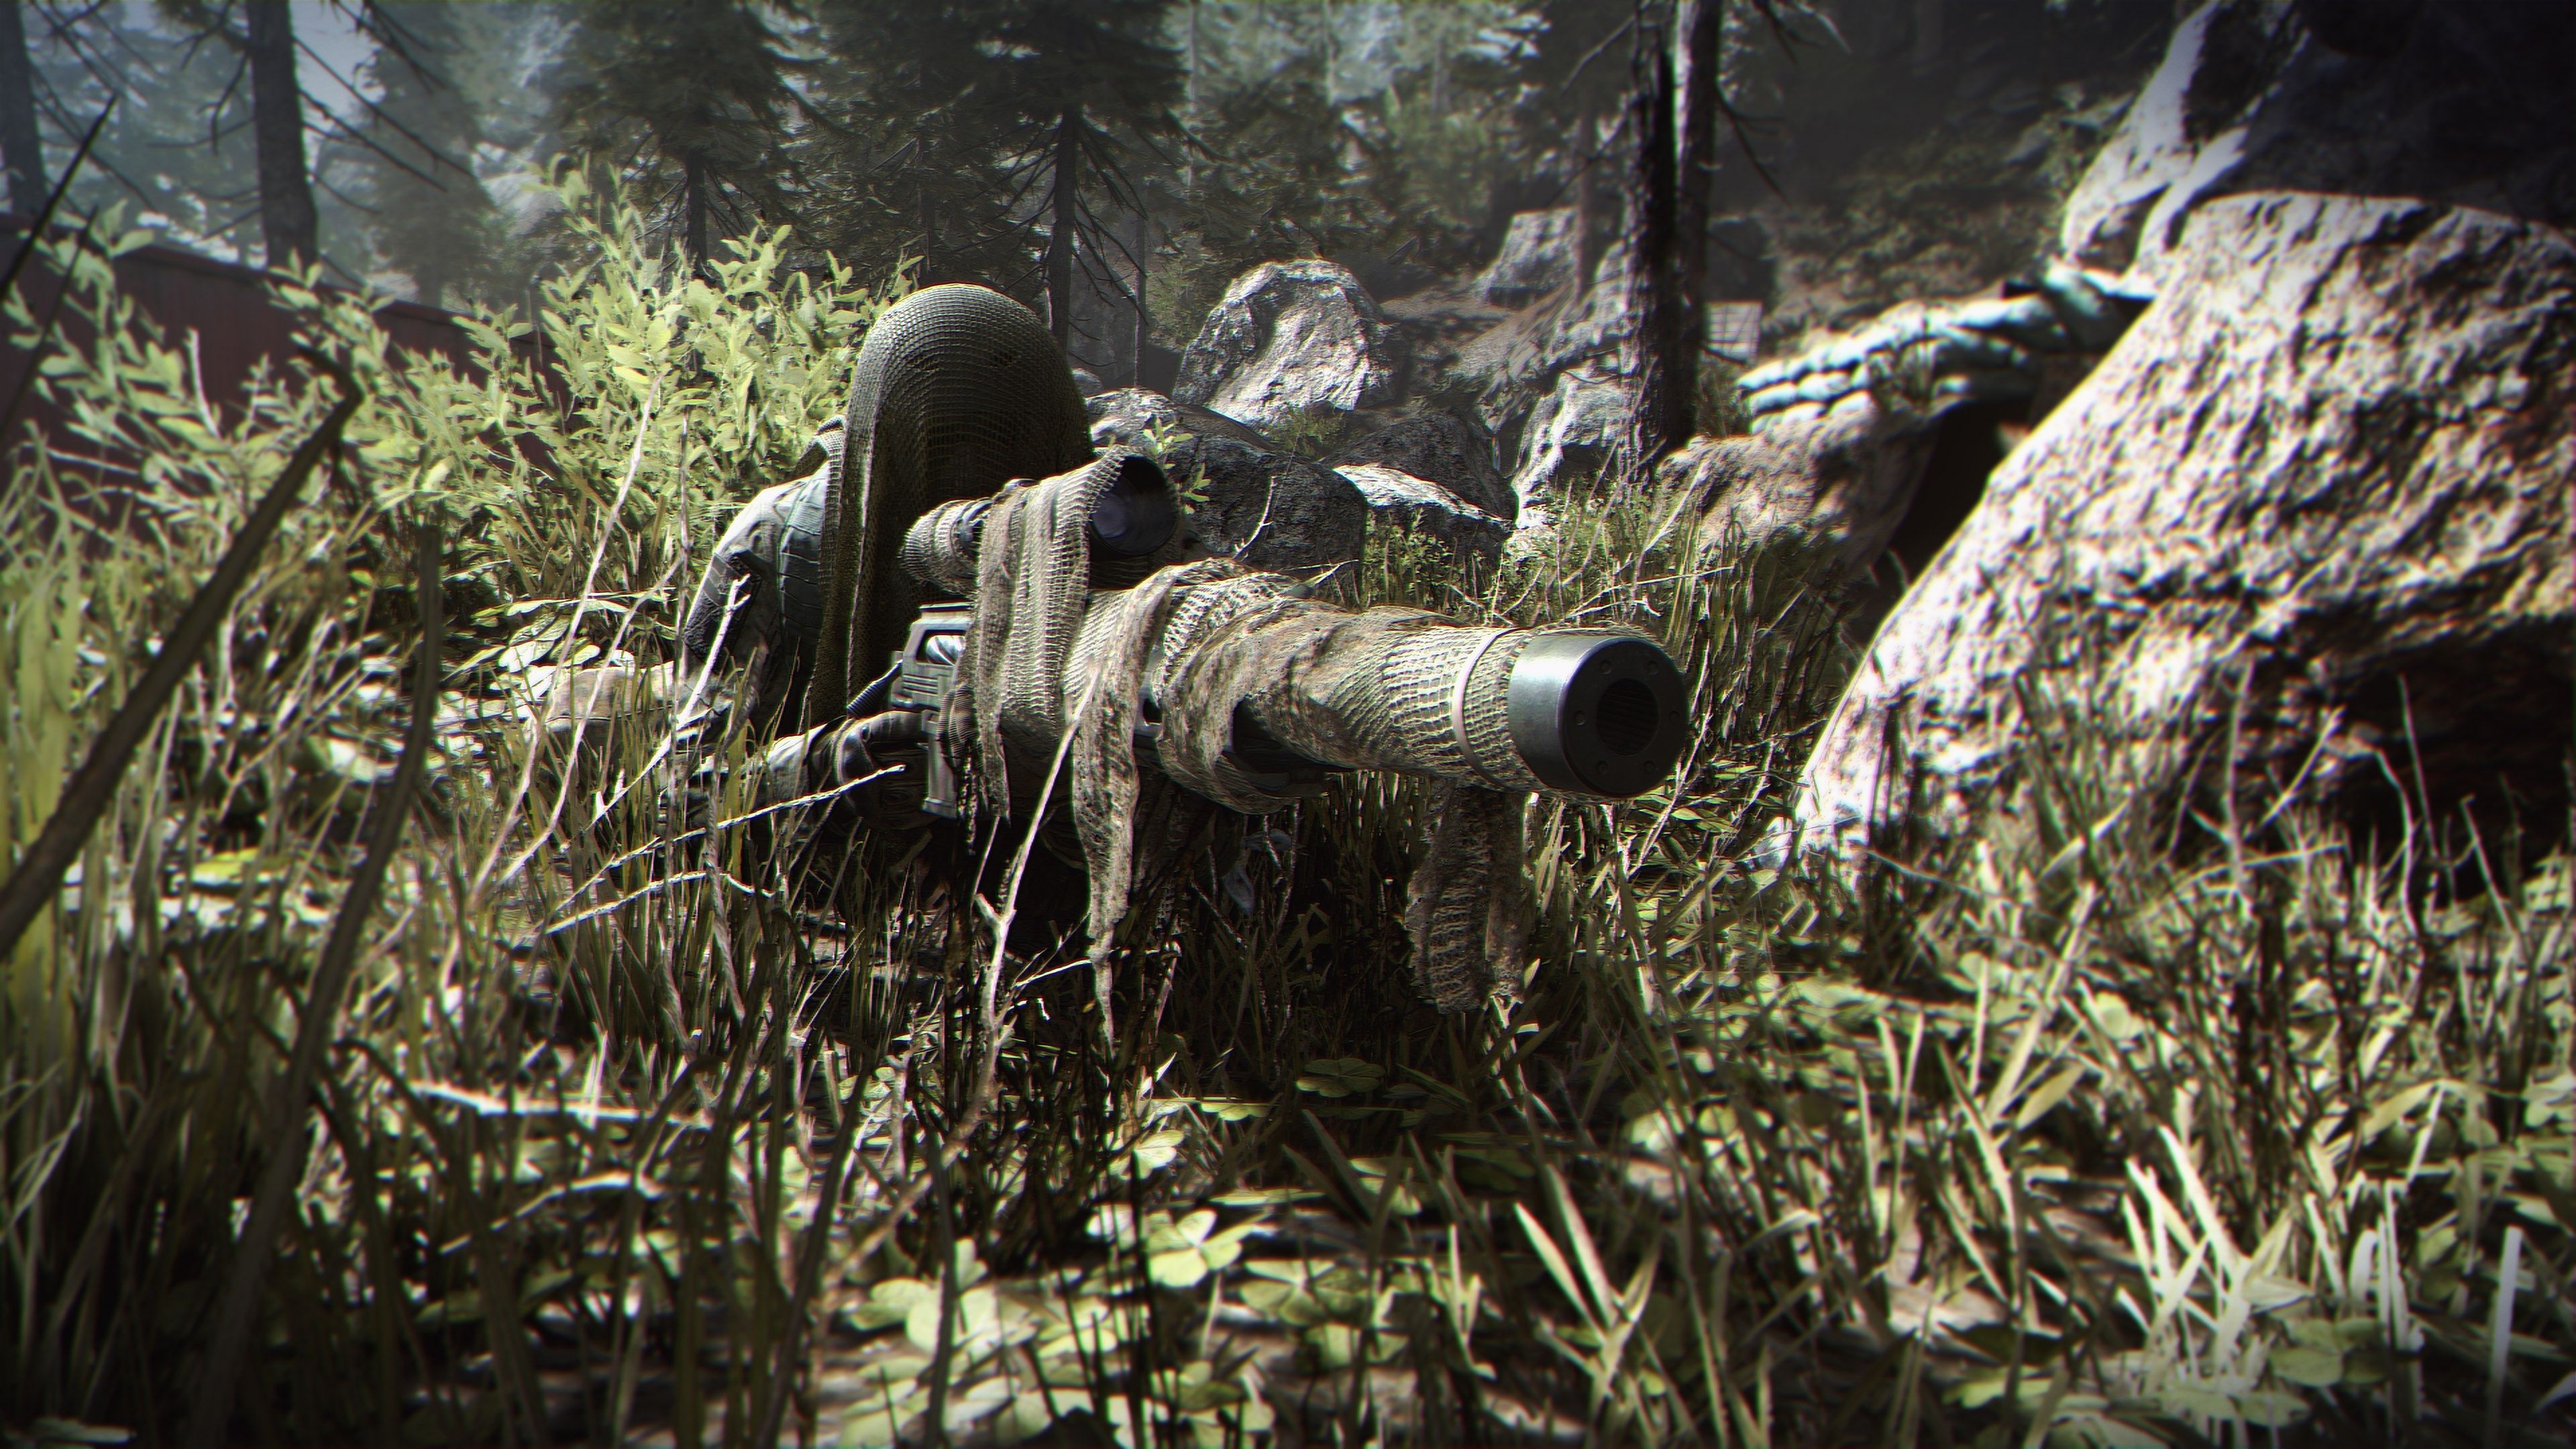 Call Of Duty Modern Warfare Is About To Get Better With Two New